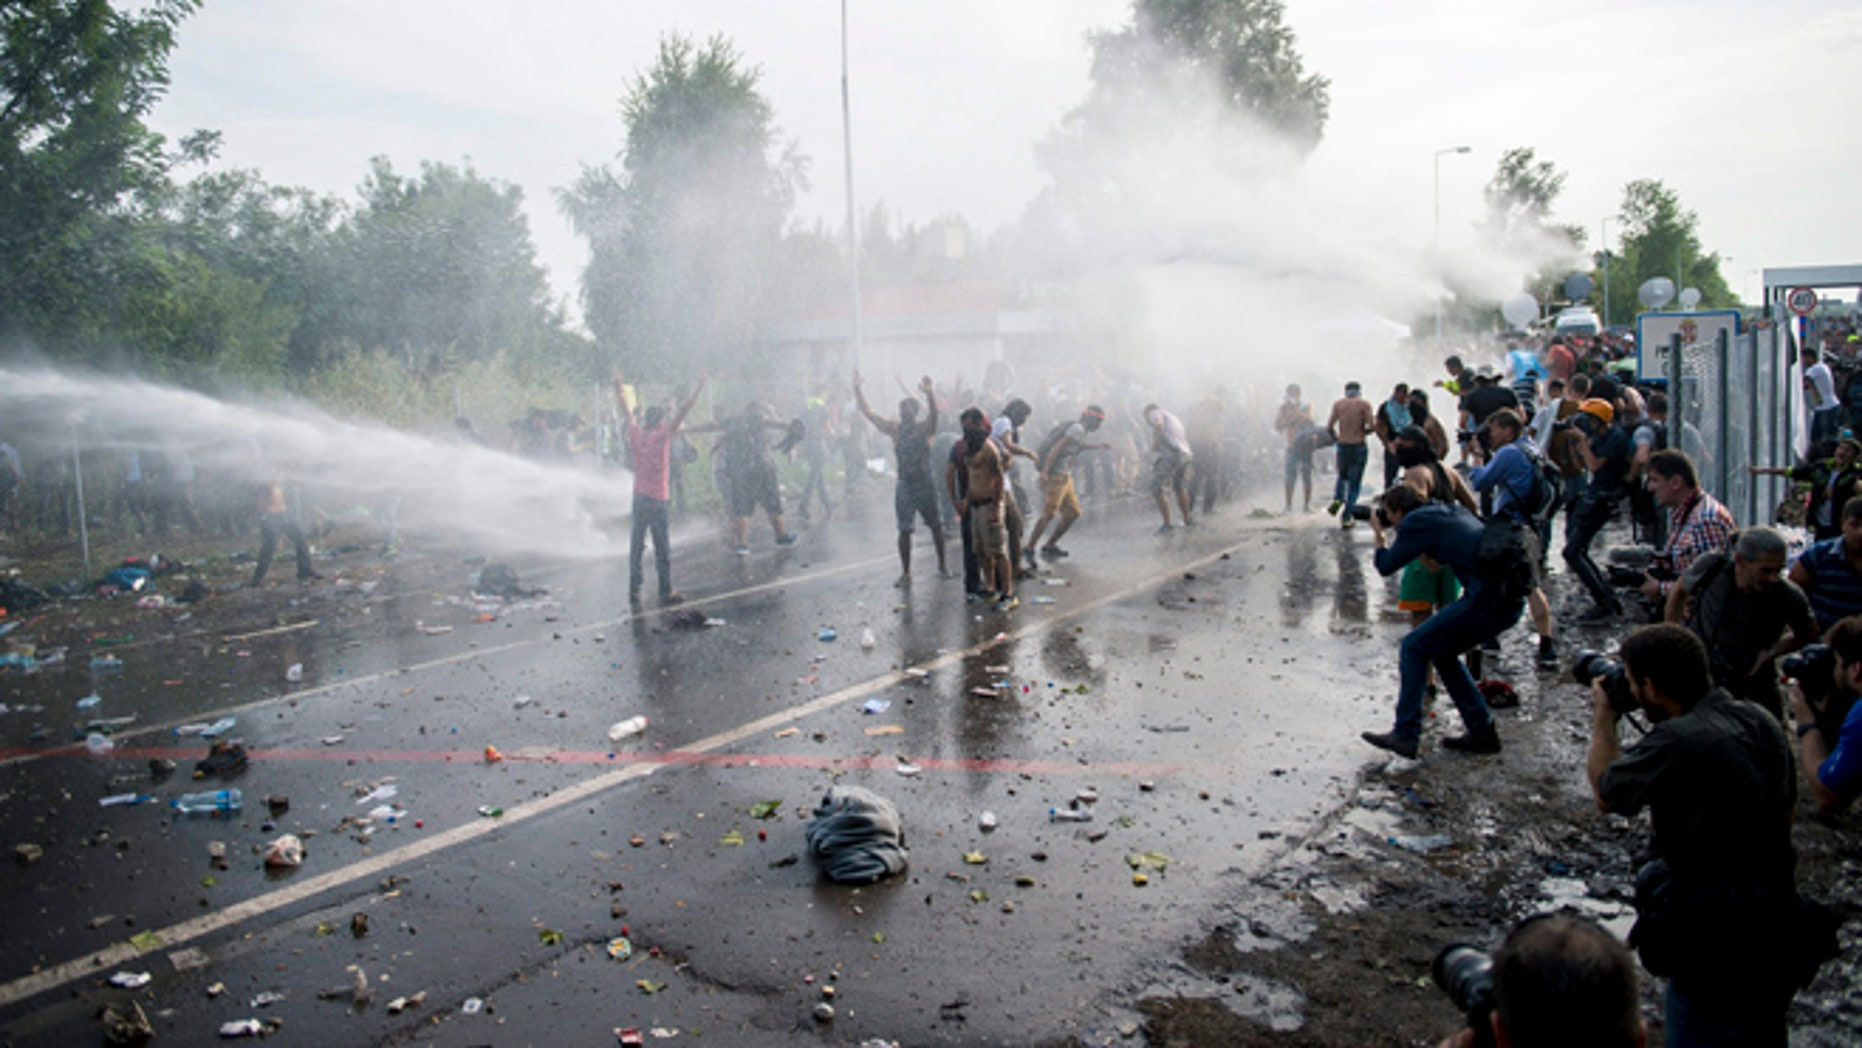 Sept. 16, 2015: Hungarian police use water canons against migrants at the Hungary-Serbia border crossing.